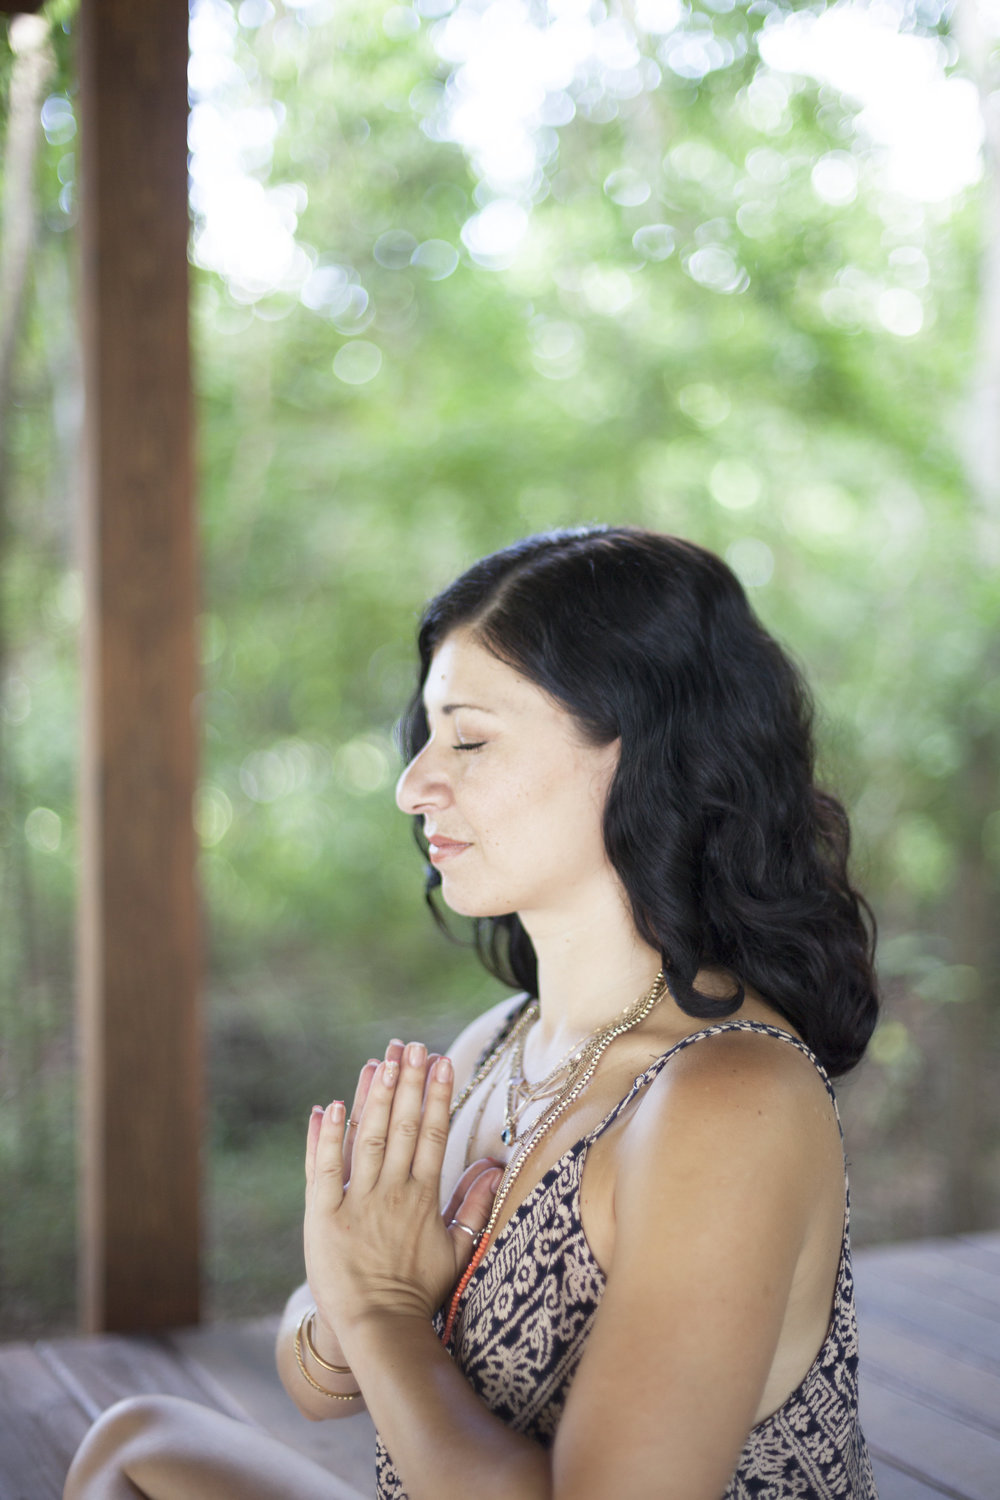 sahar-paz-yoga-prayer.jpg